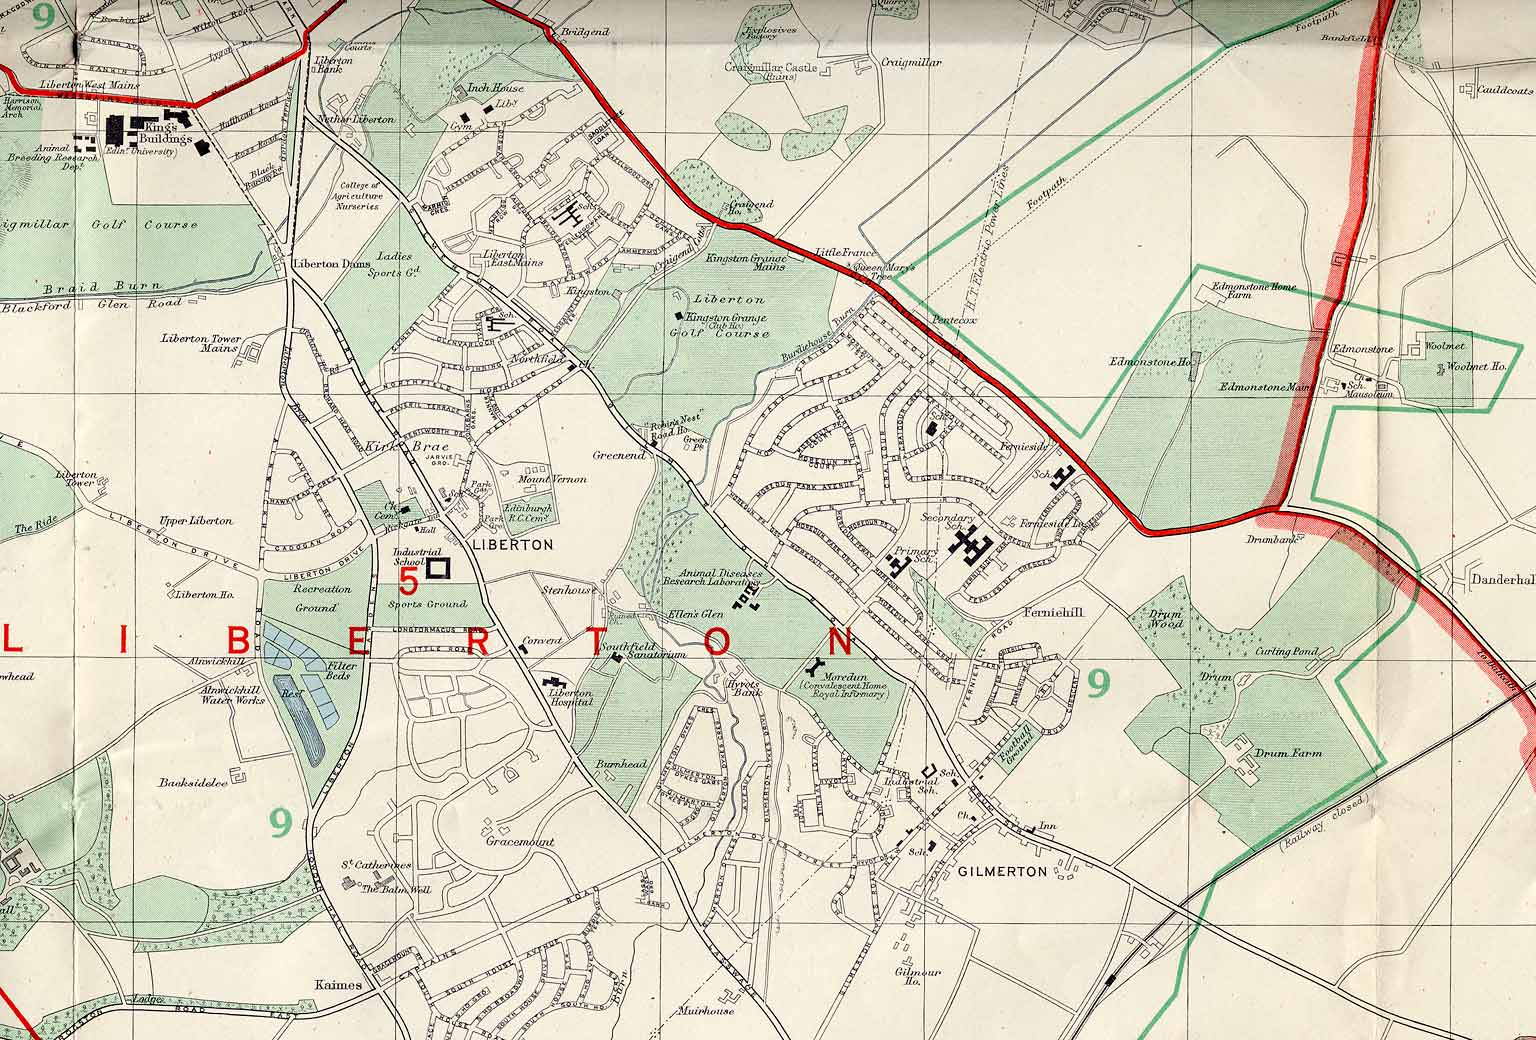 Edinburgh and Leith map, 1955  -  Liberton